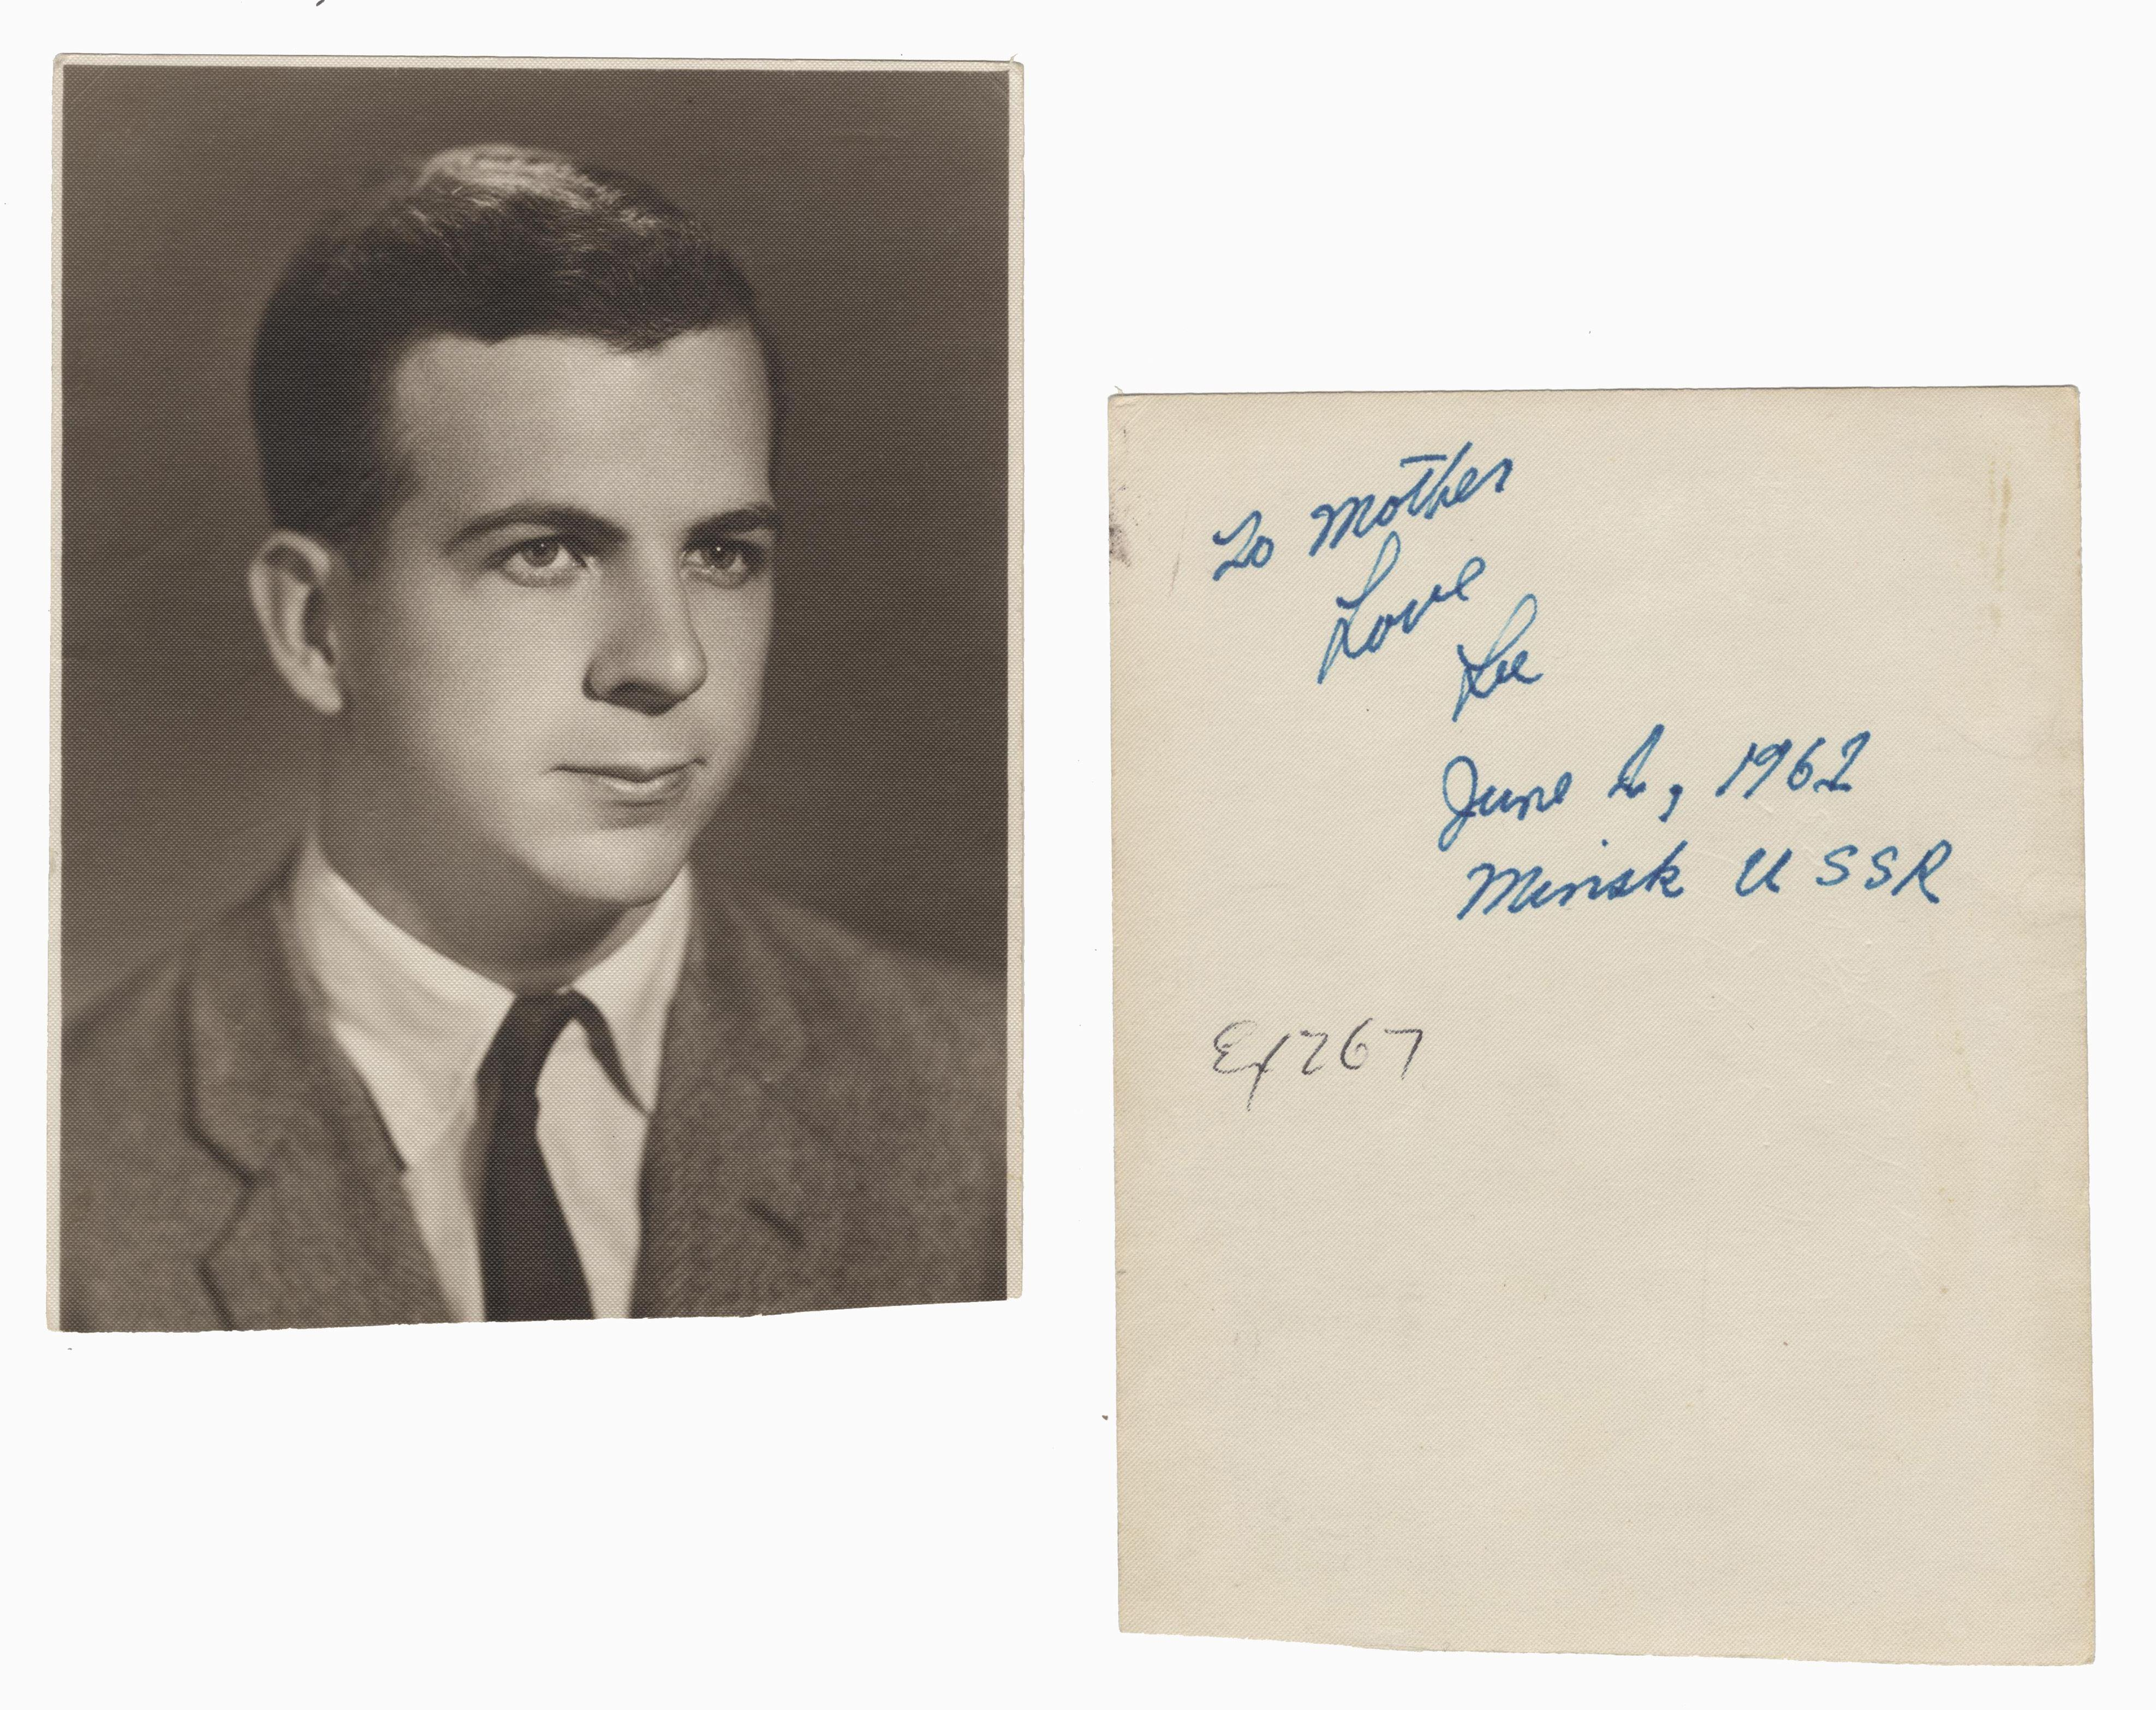 Incredible Lee Harvey Oswald Signed Photograph, Scarce, One of Only a Few!